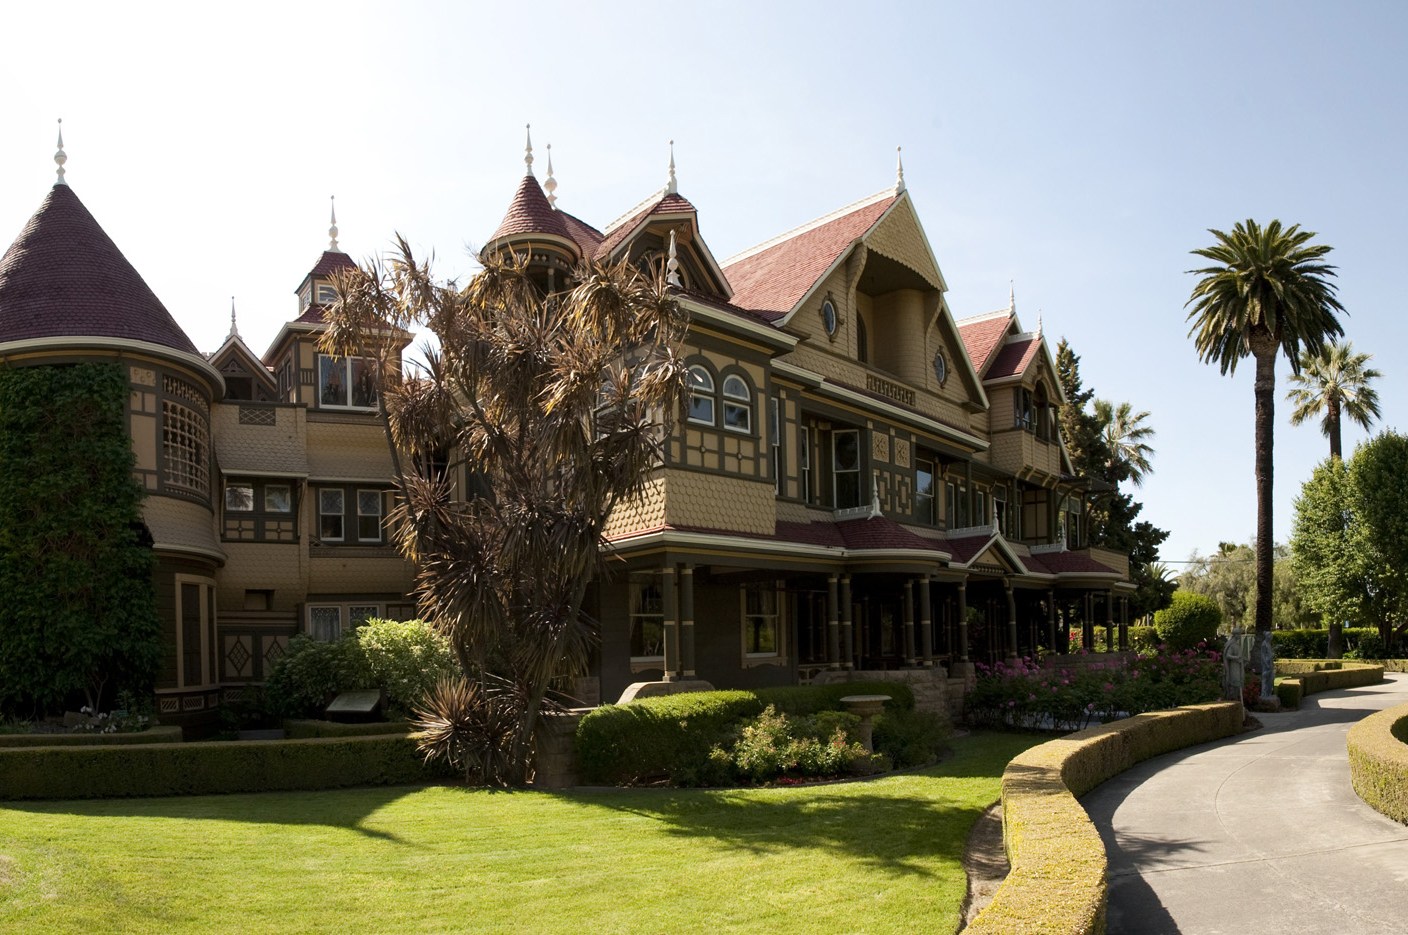 winchester mystery house offering halloween candlelight tours | the